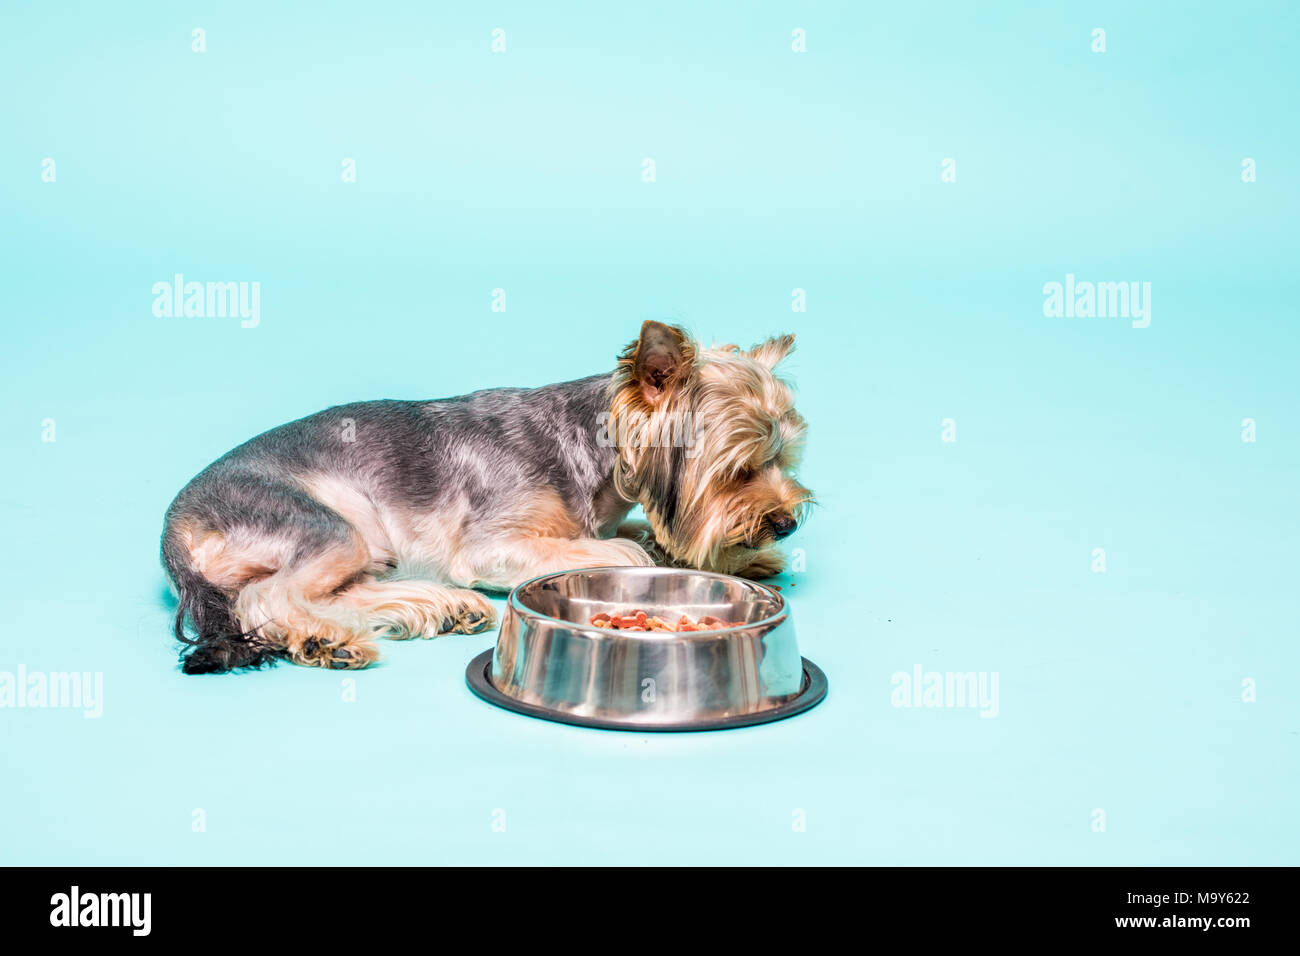 Yorkshire Terrier With Steel Bowl Looking At Camera Maybe Defend